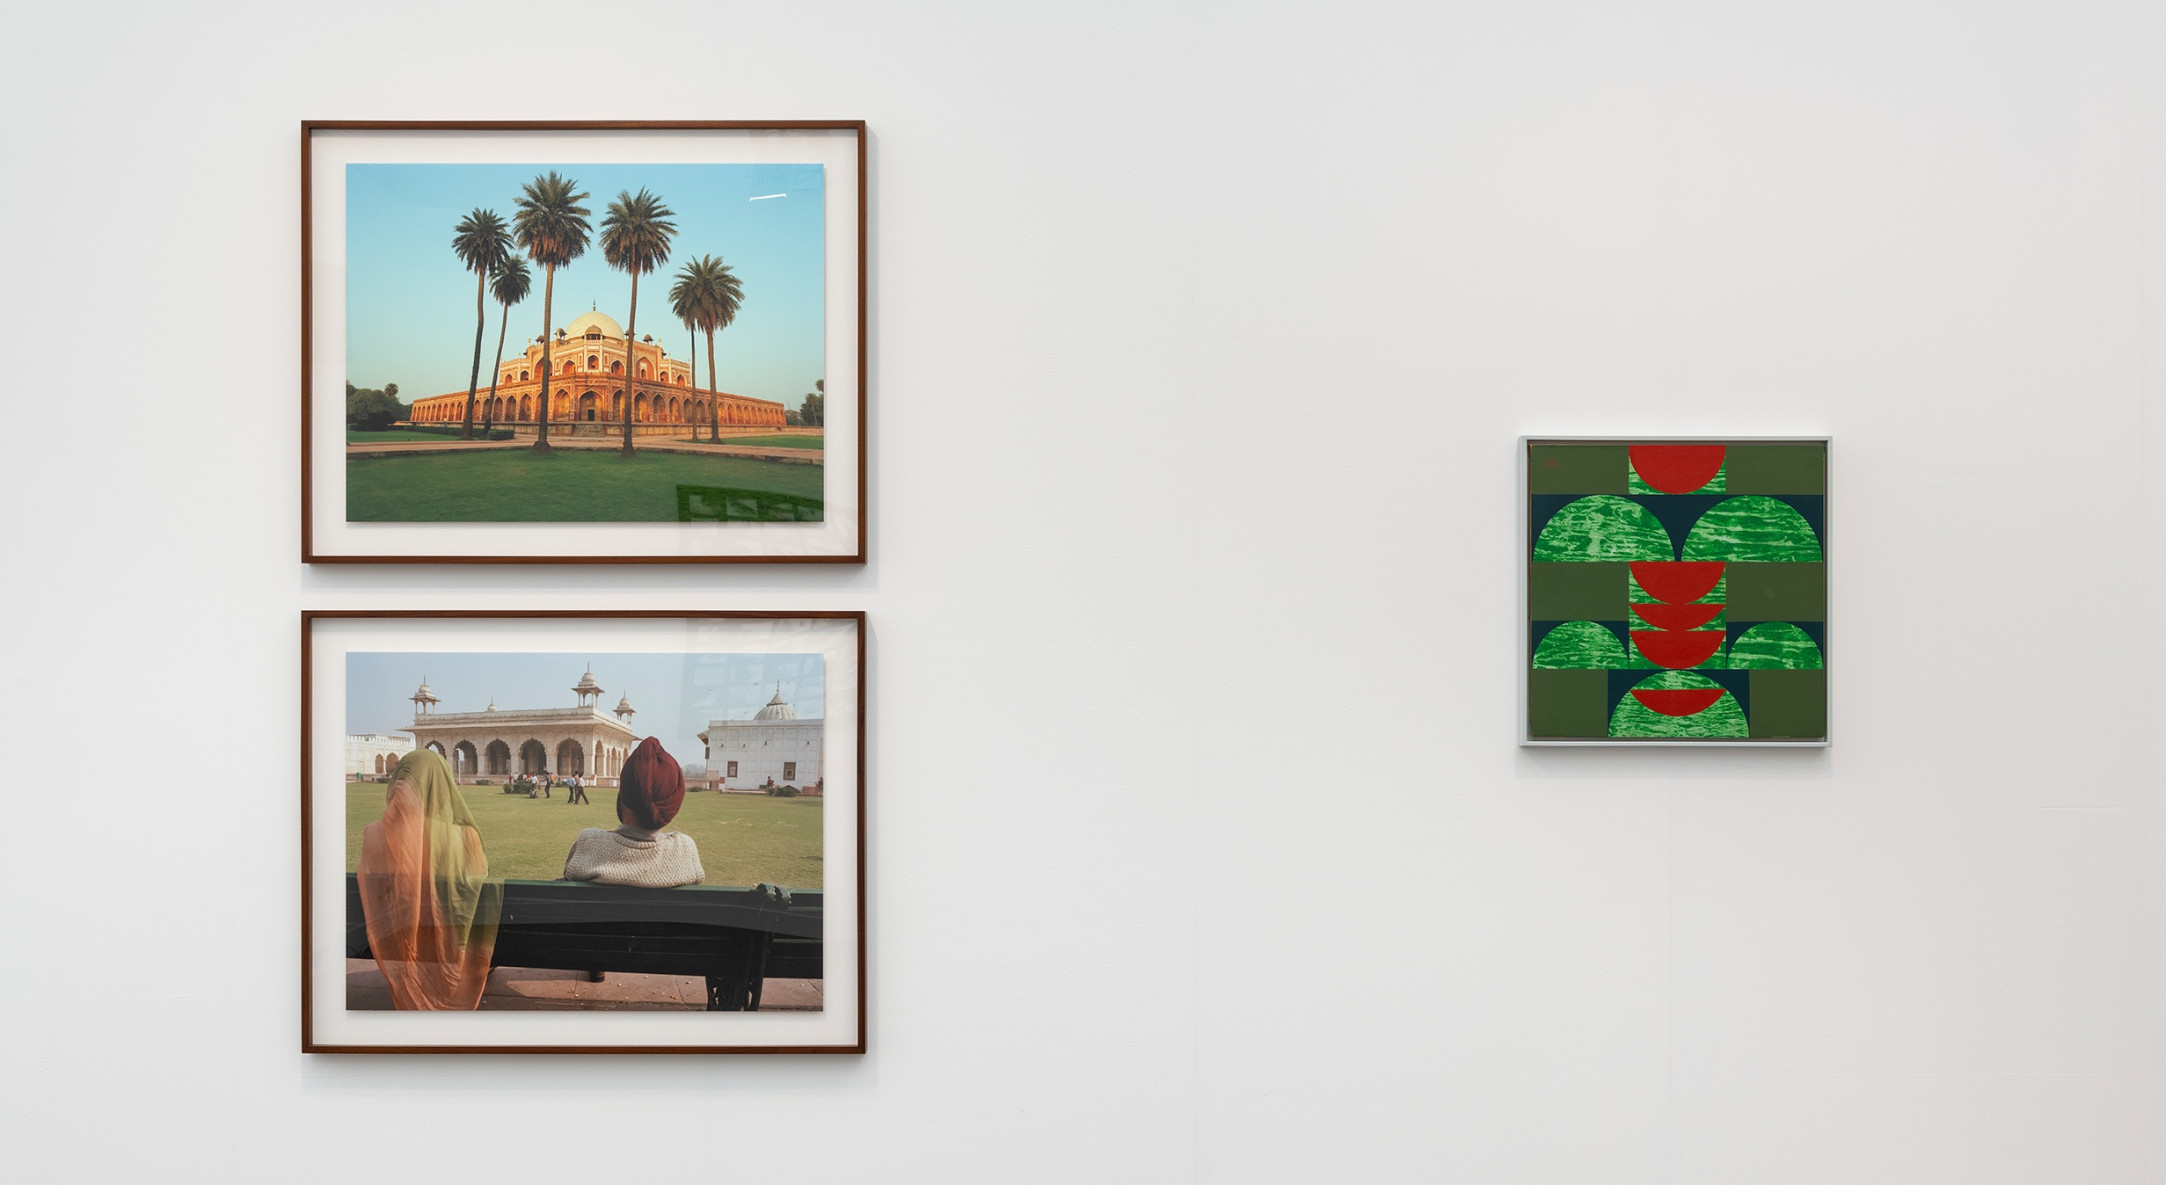 Installation view of Hales Gallery booth at Frieze London 2019